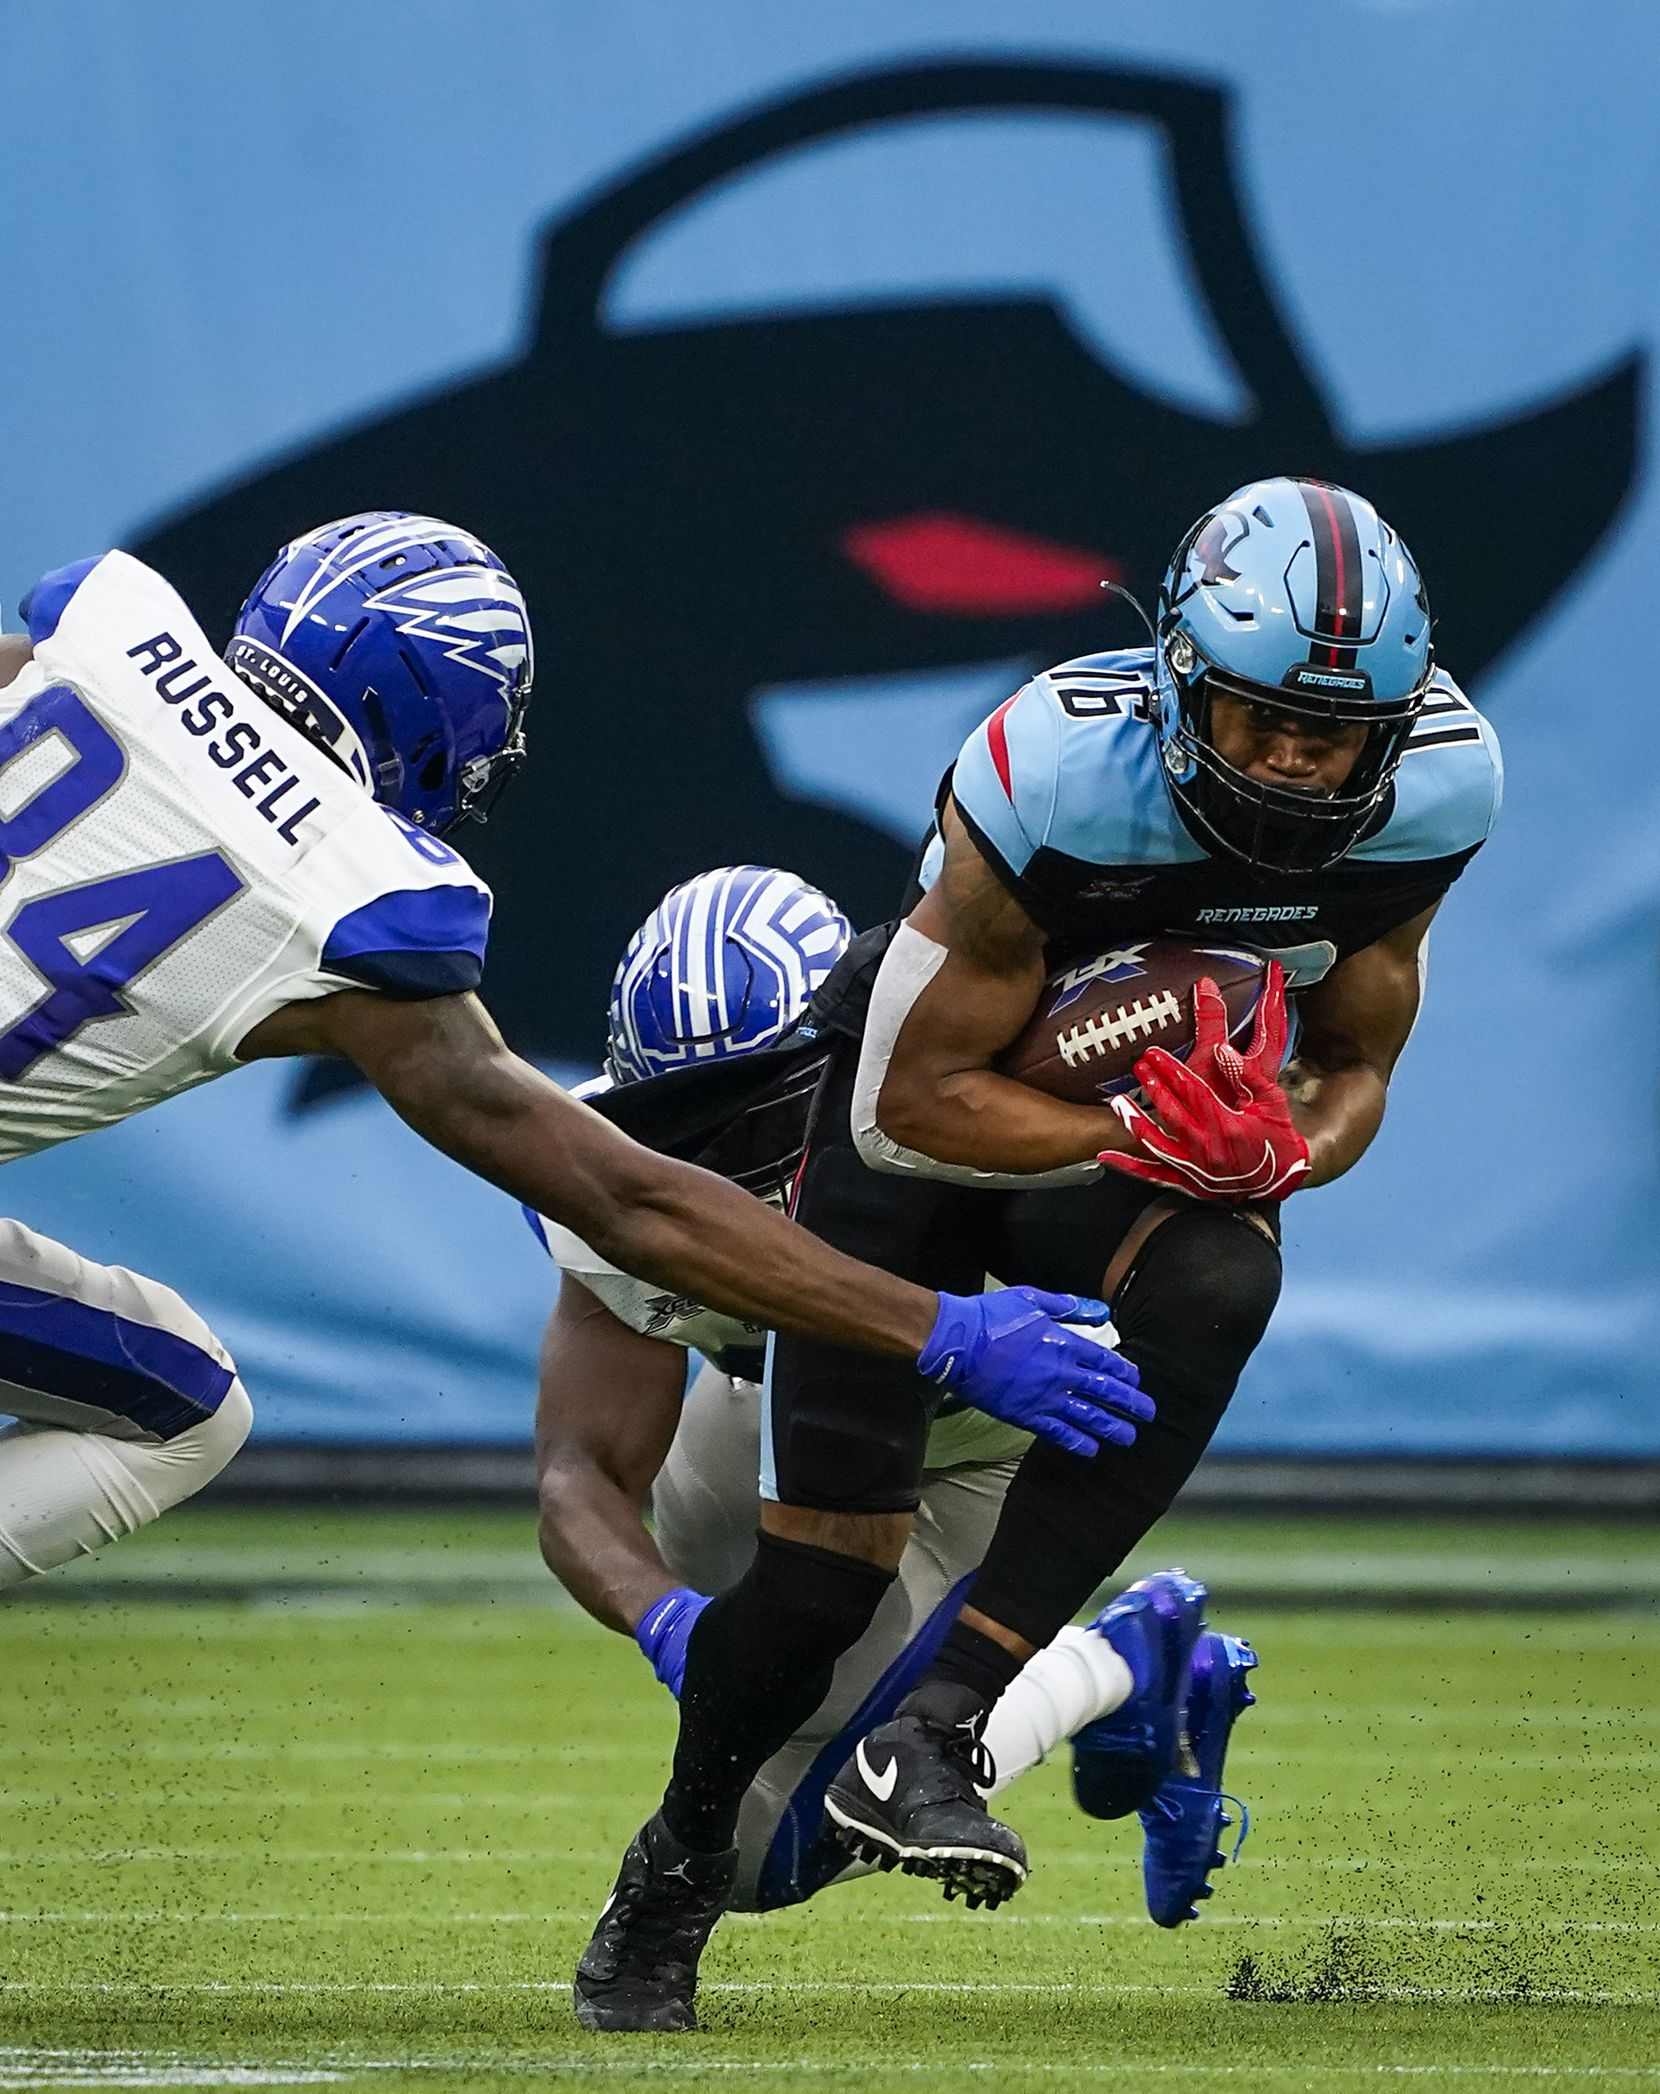 Dallas Renegades wide receiver Jerrod Heard (16) is brought down by the St. Louis Battlehawks Alonzo Russell (84) and Steve Beauharnais (58) during the first half of an XFL football game at Globe Life Park on Sunday, Feb. 9, 2020, in Arlington.